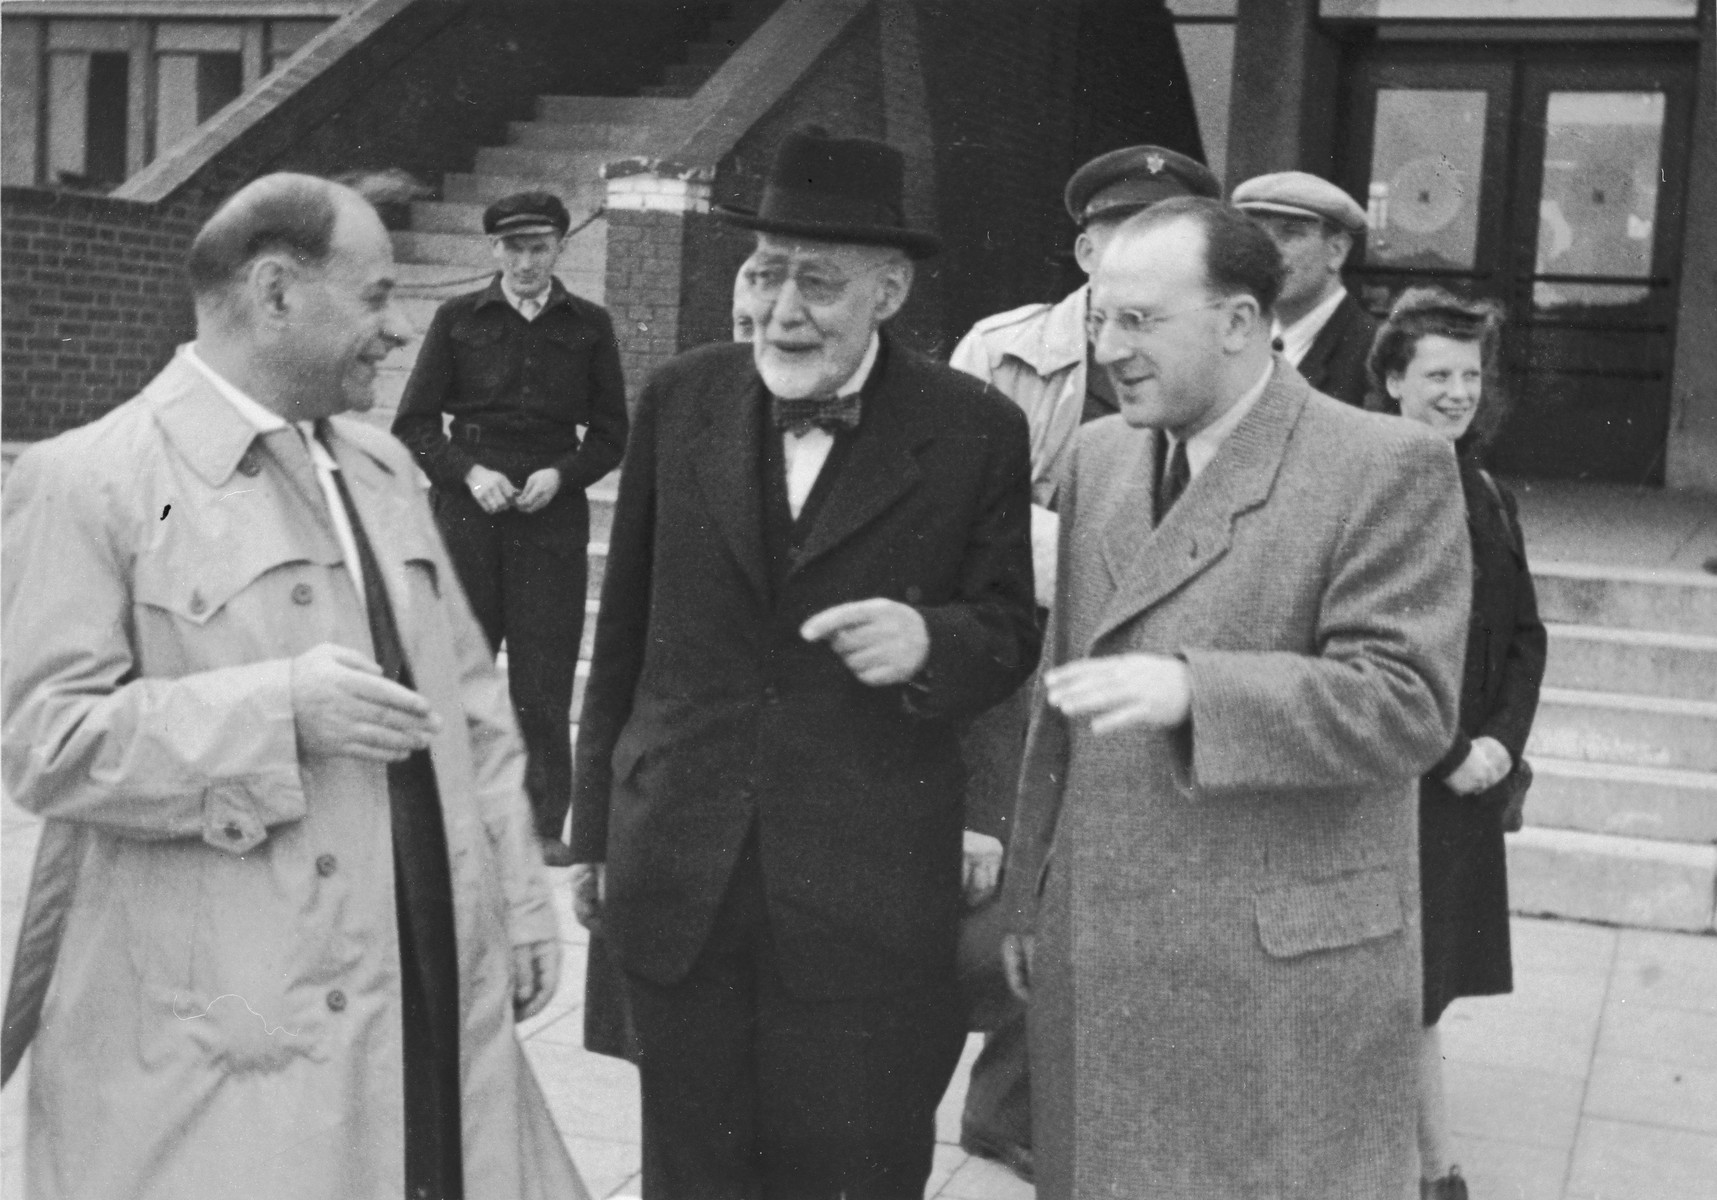 Norbert Wollheim (right) and Rabbi Leo Baeck (center) converse with an official soon after Baeck's arrival in Hamburg at the start of a three week visit to Germany.  Baeck was greeted at the airport by Norbert Wollheim, Chairman of the Central Committee of Jews in the British Zone.  Baeck's trip included participation in an evangelical congress in Darmstadt on October 12, as well as numerous appearances before local Jewish communities.